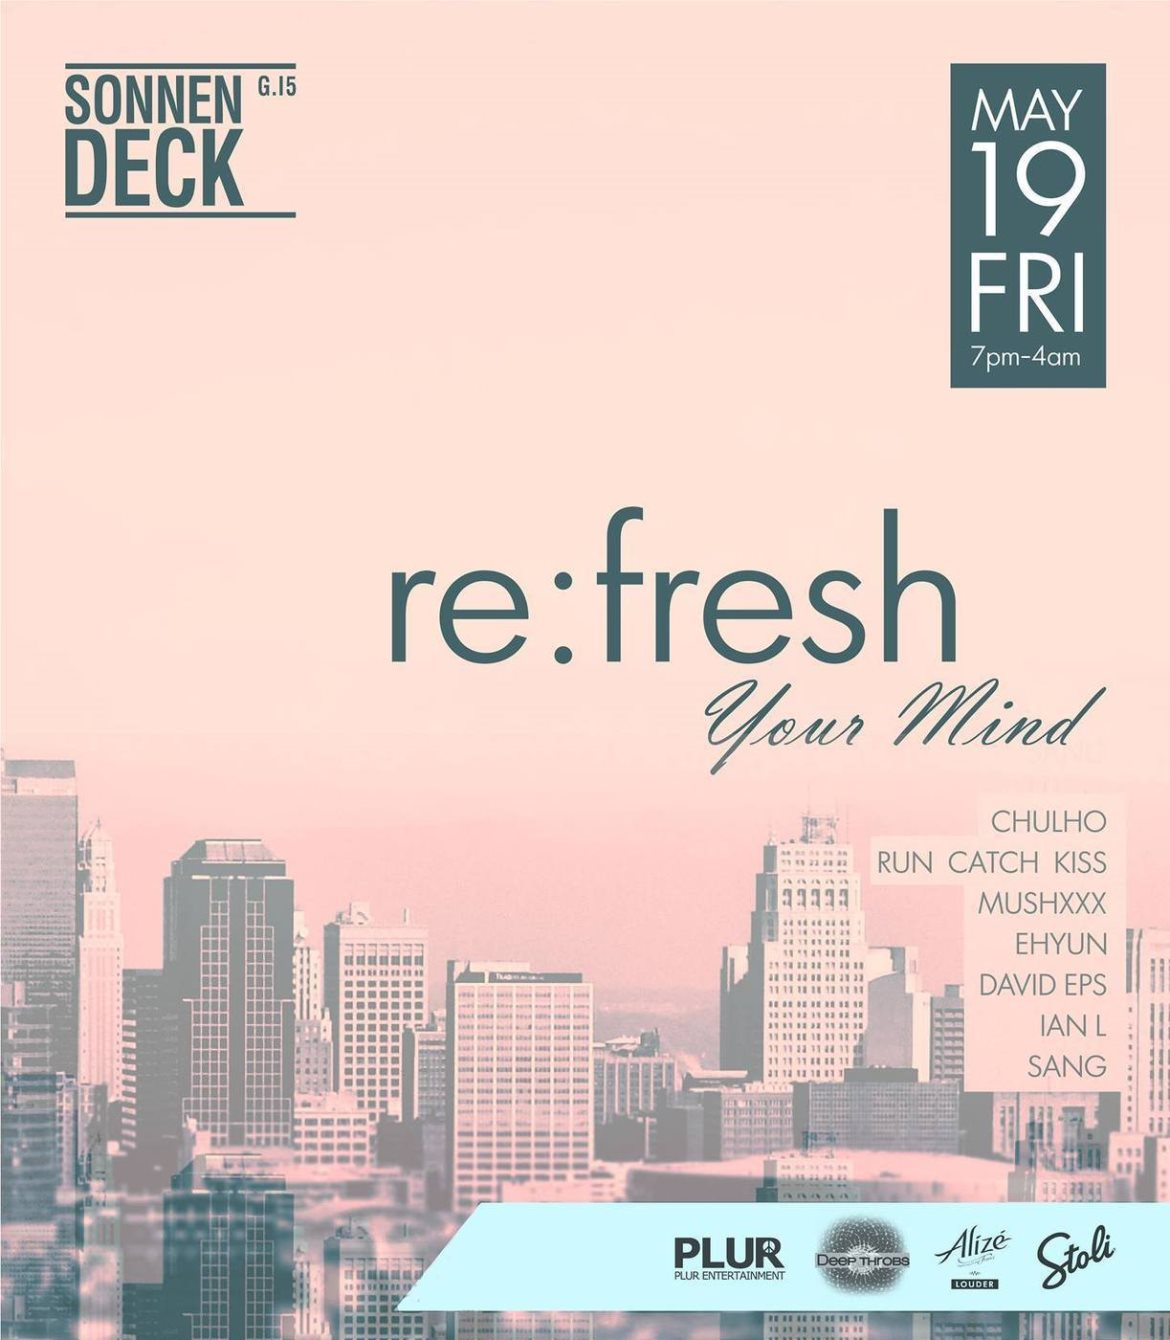 Re:Fresh Your Mind presented by Deepthrobs - Flyer front